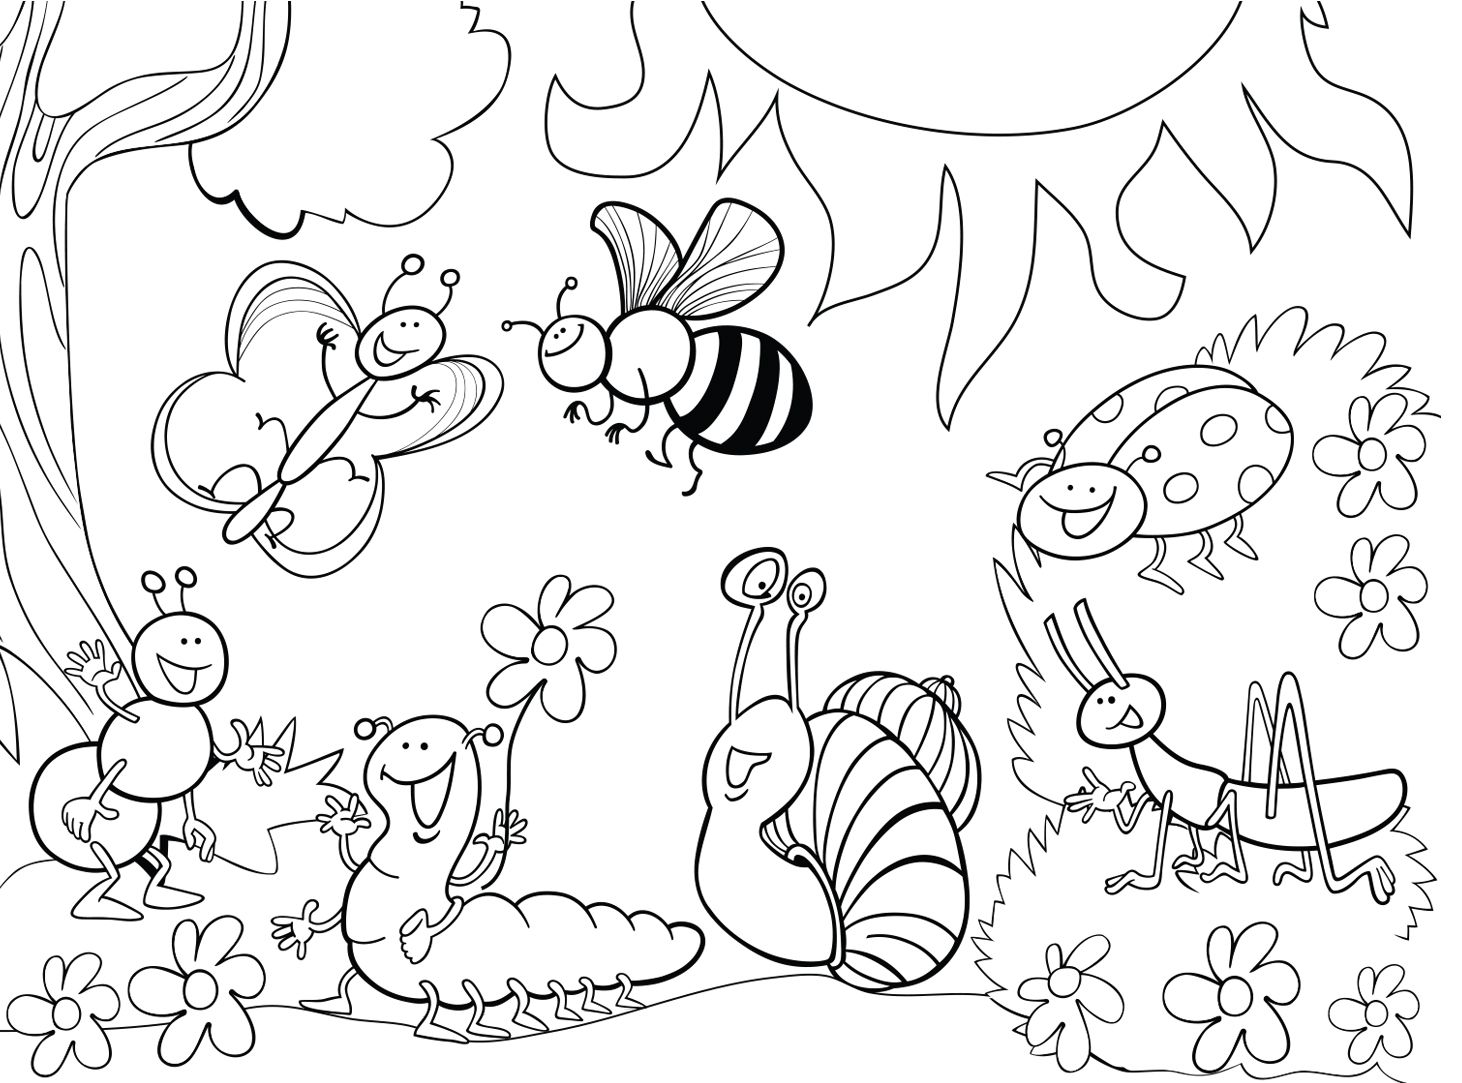 insect coloring pictures insects for kids insects kids coloring pages pictures coloring insect